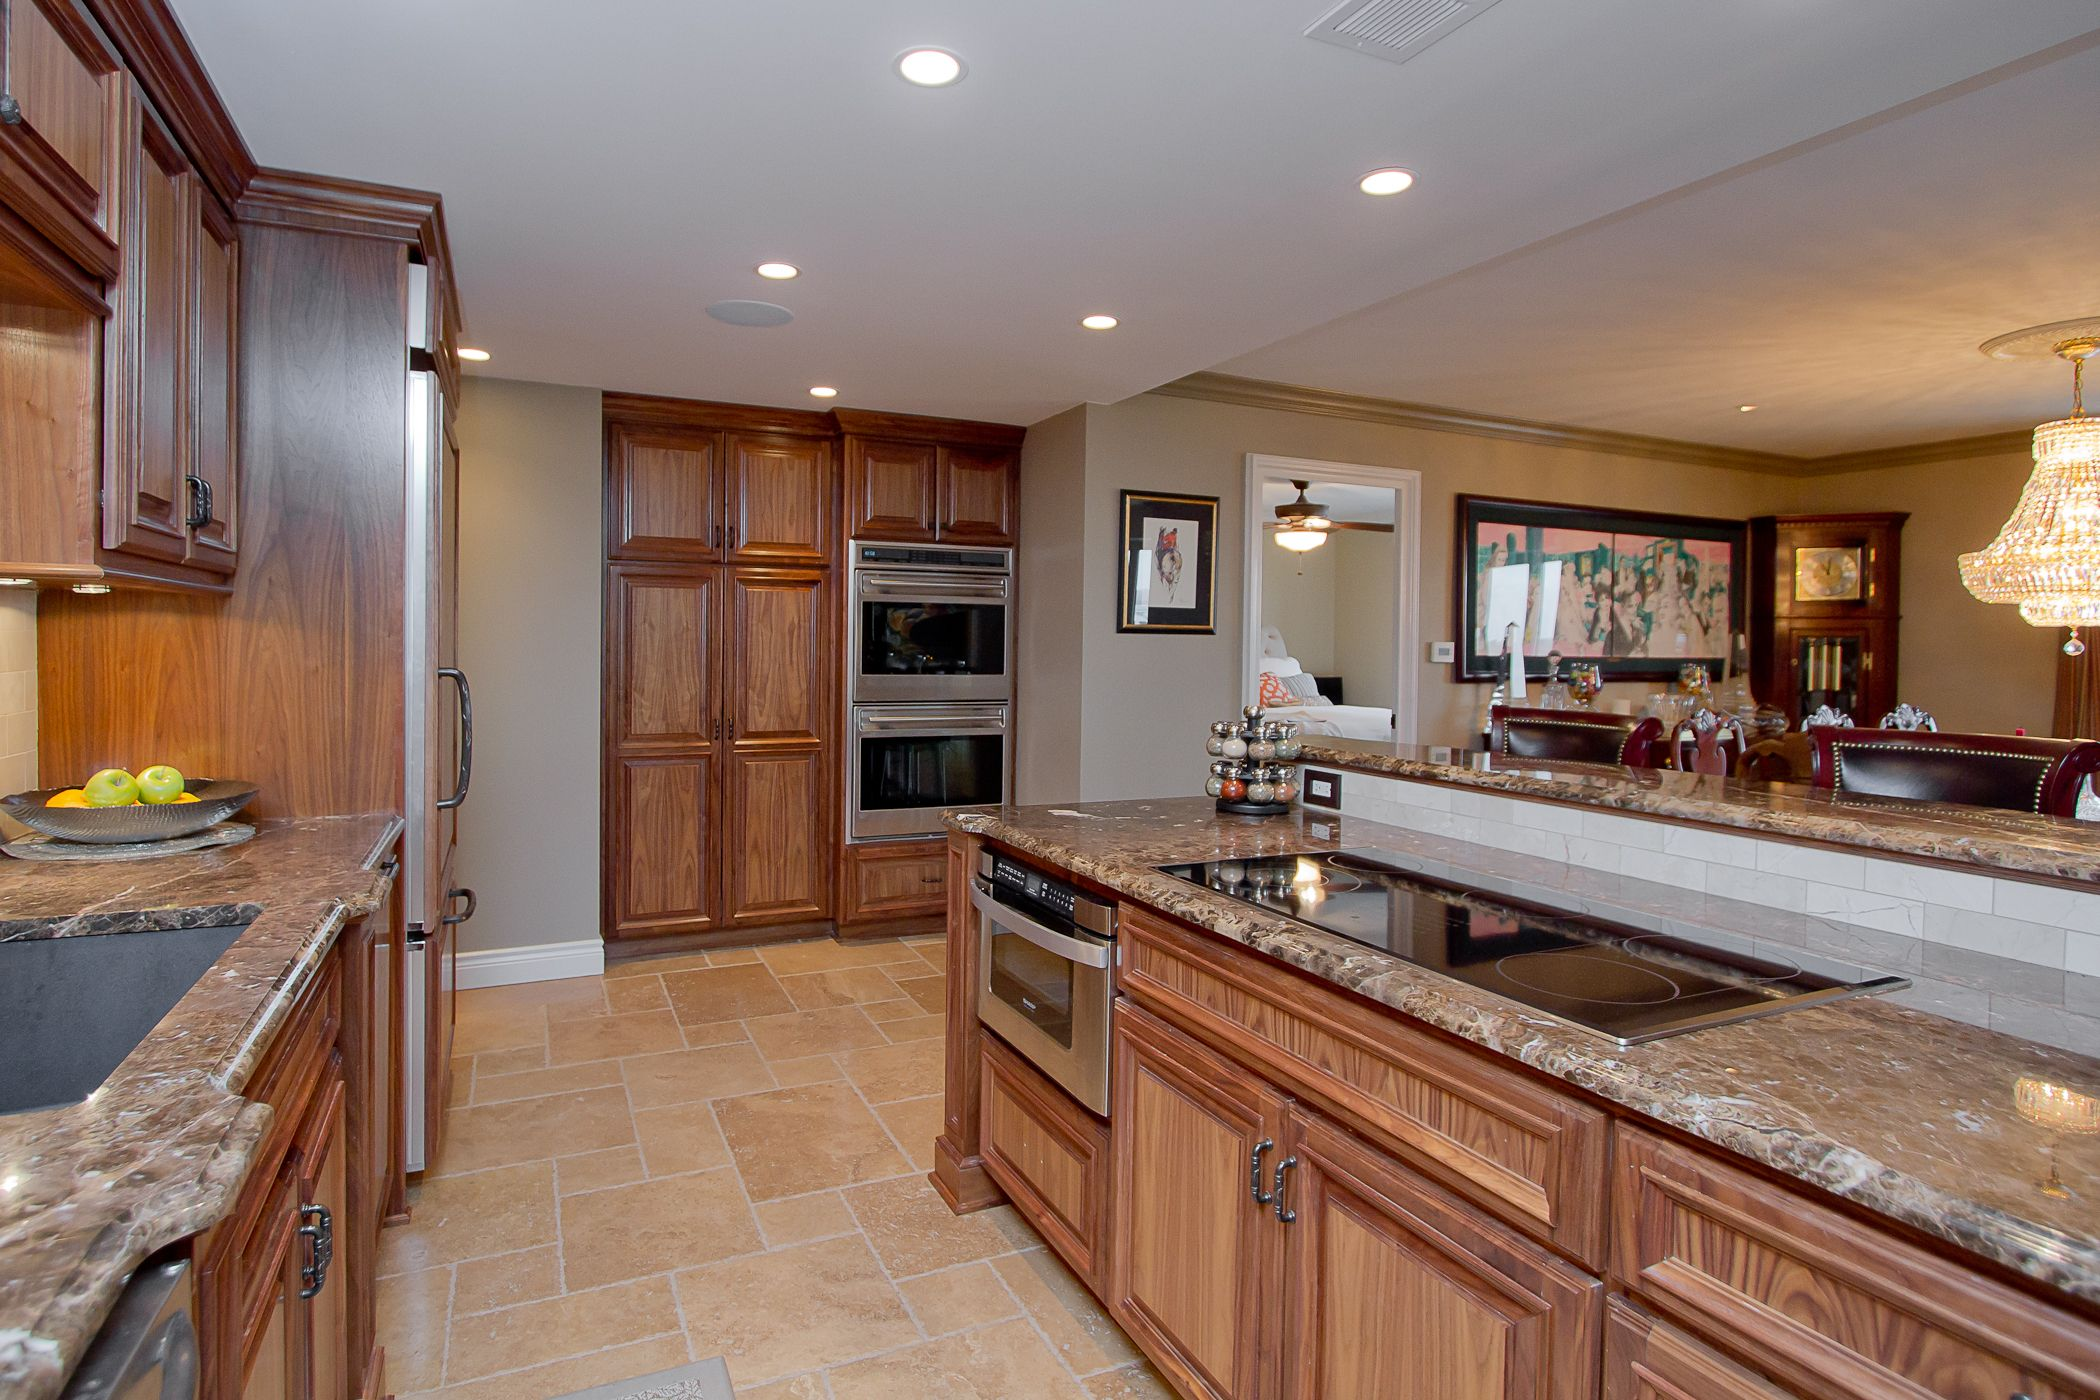 Dark Walnut Kitchen Cabinetry Condo On The Plaza Kansas City Mo Cabinetry Design Kitchen Cabinetry Custom Cabinetry